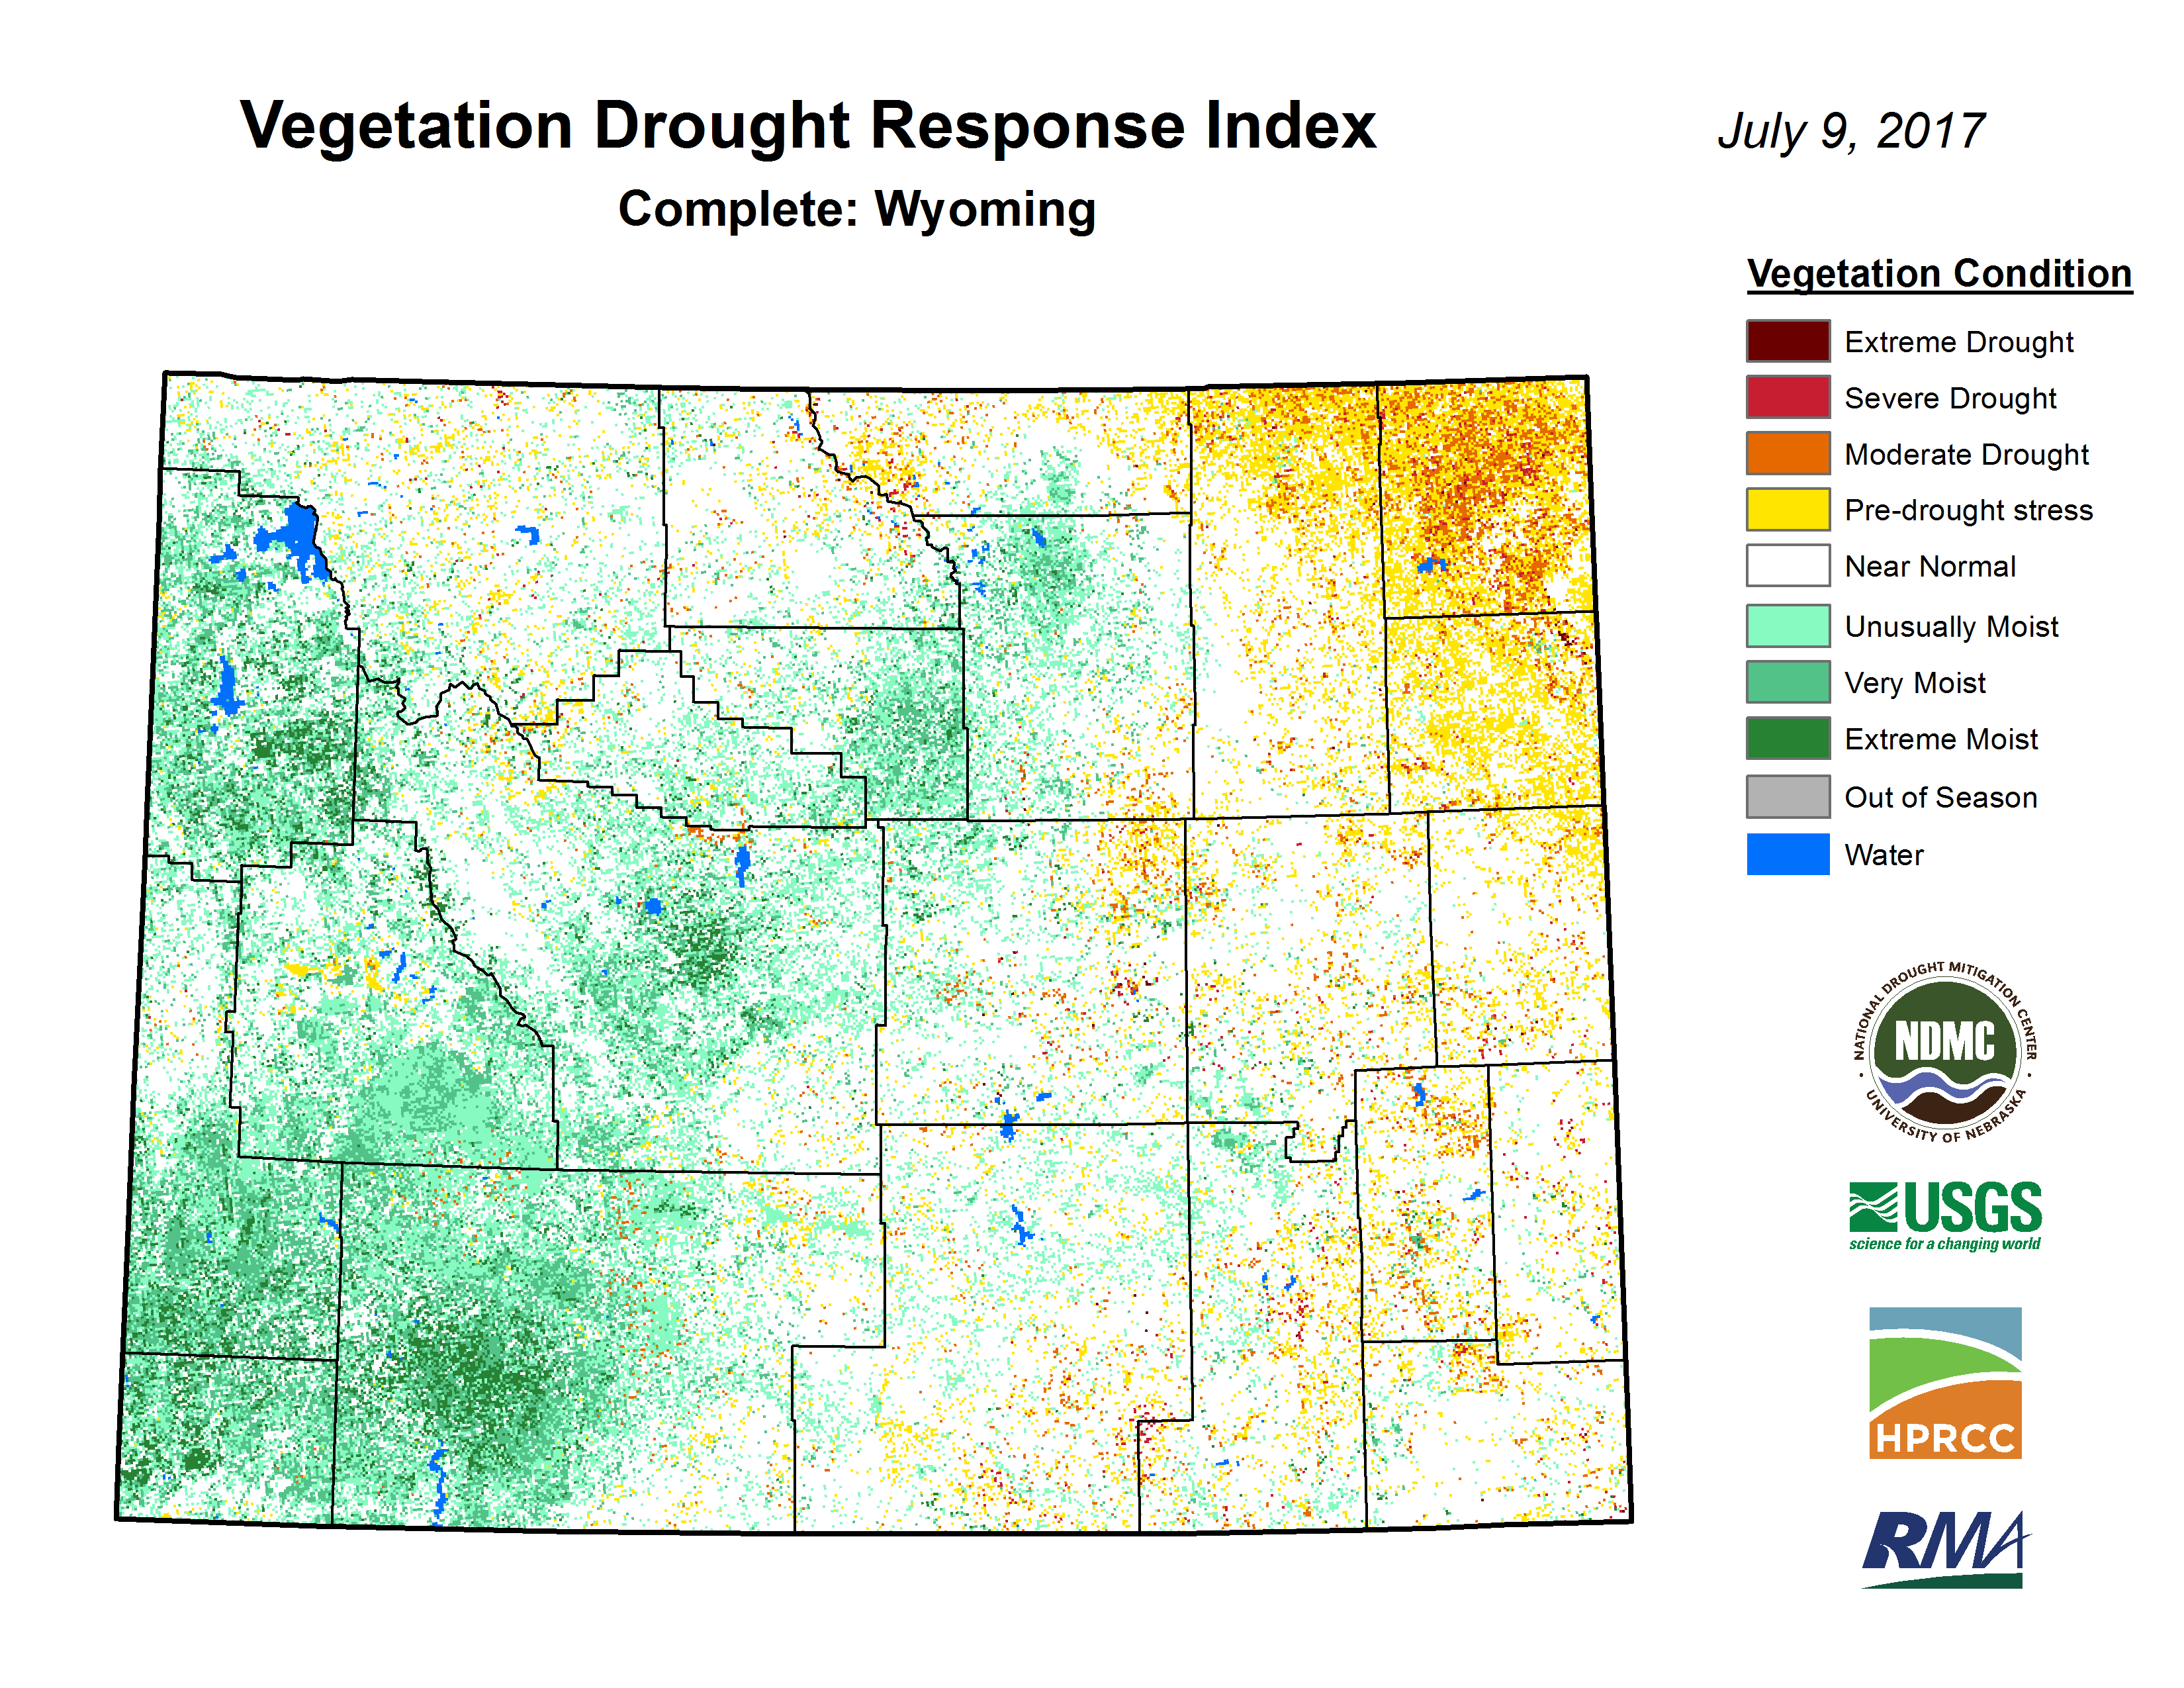 Vegetation Drought Response Index - Click to Enlarge